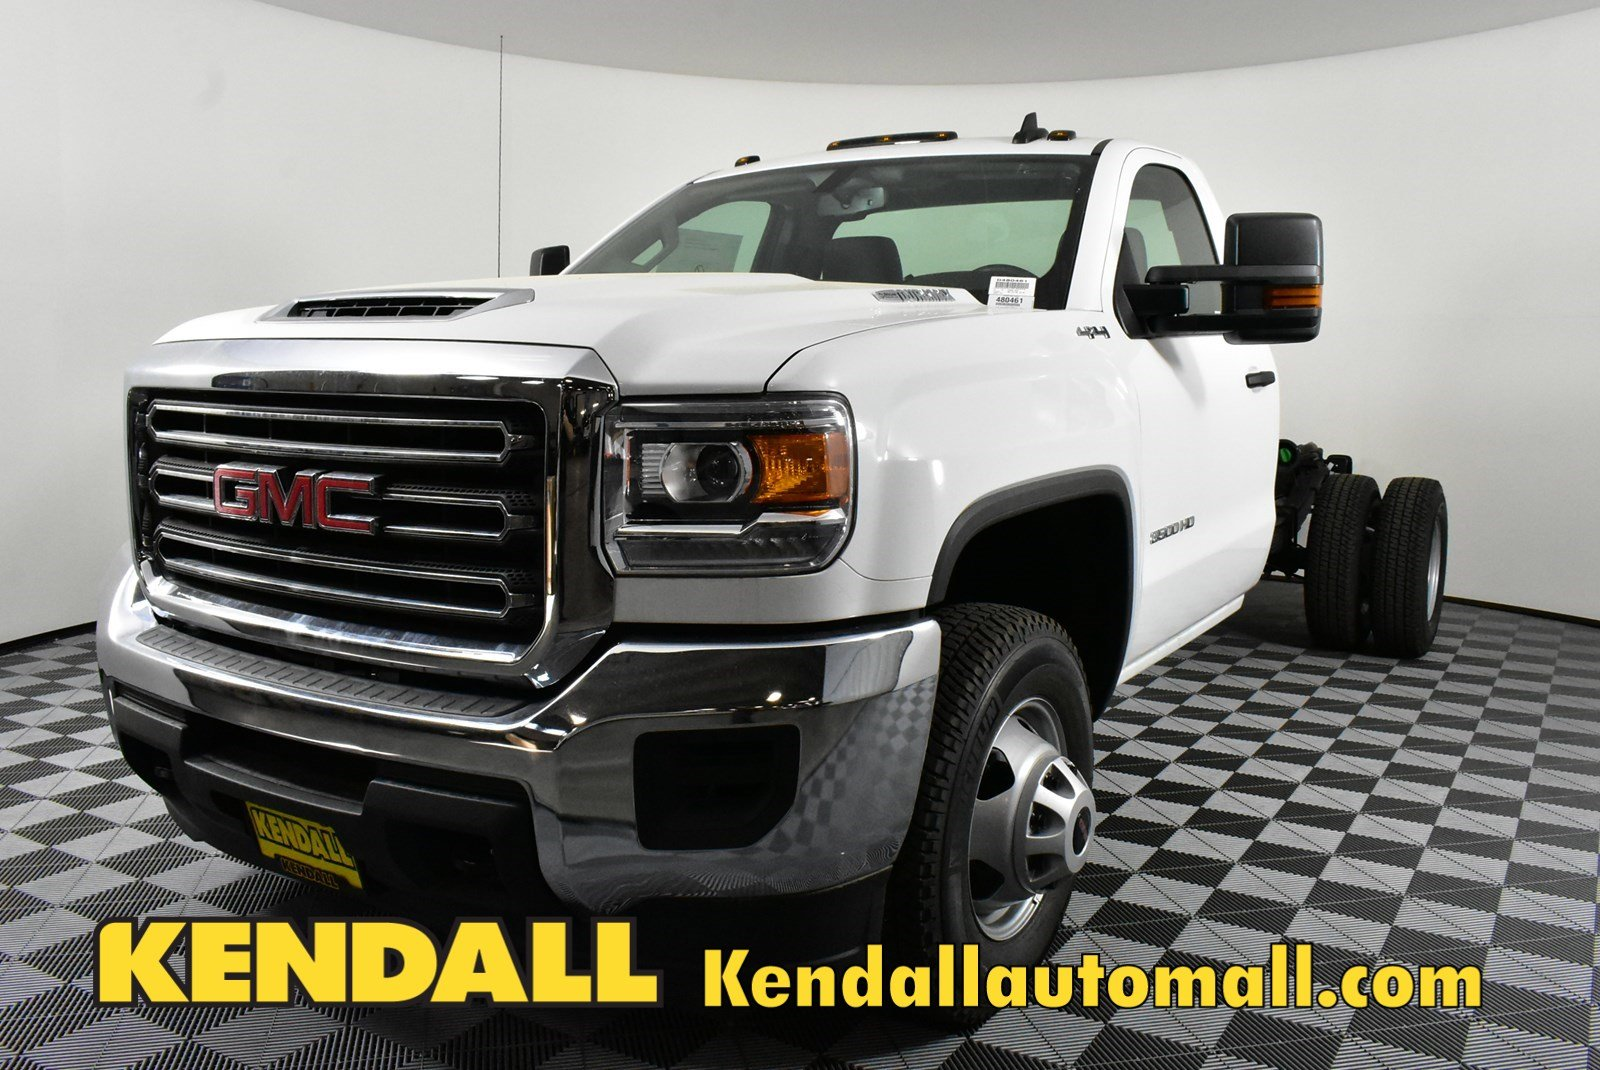 New 2018 Gmc Sierra 3500hd 4wd In Nampa D480461 Kendall At The